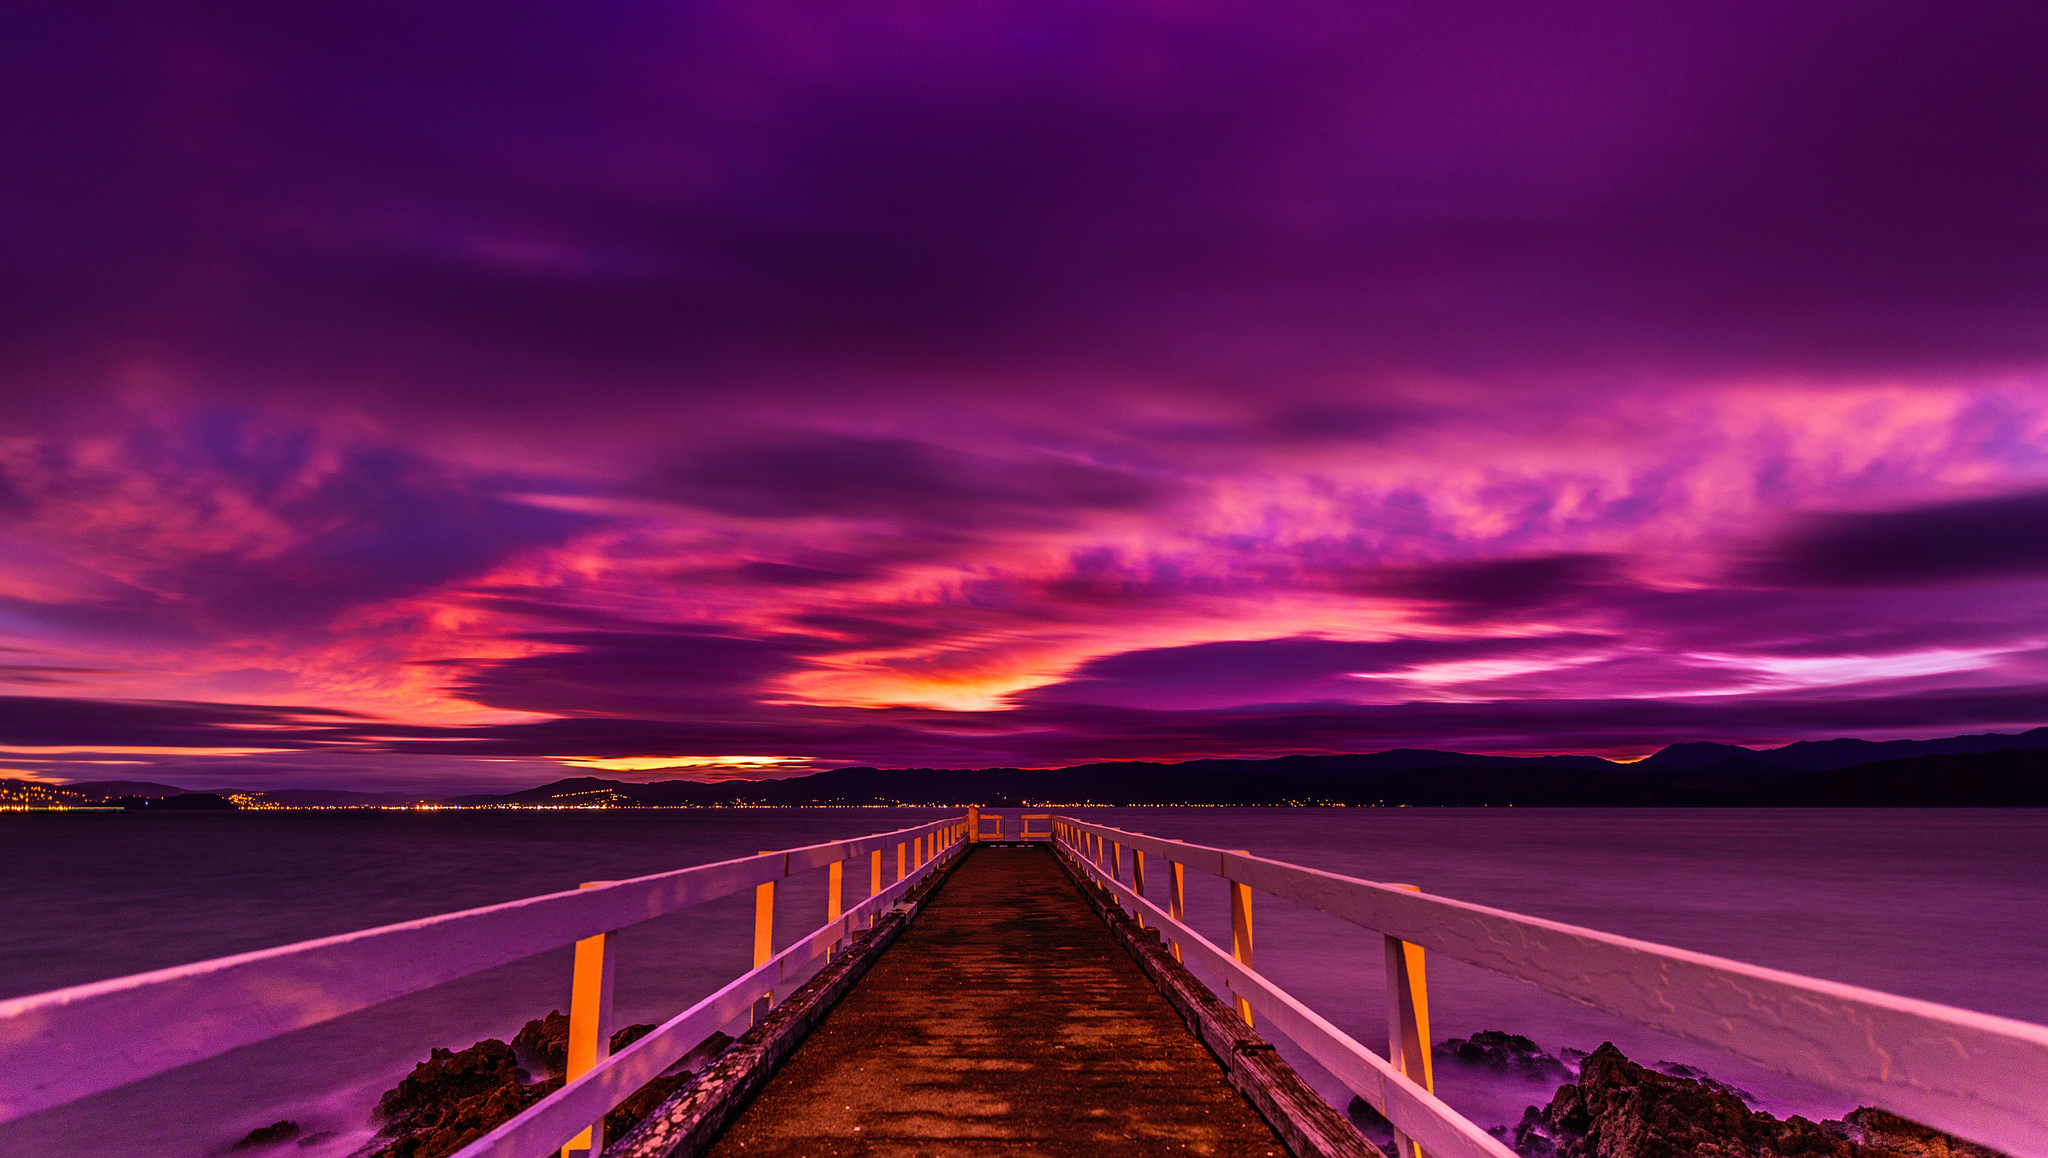 Purple Sunset Over Pier Hd Wallpaper Background Image 2048x1158 Id 683722 Wallpaper Abyss